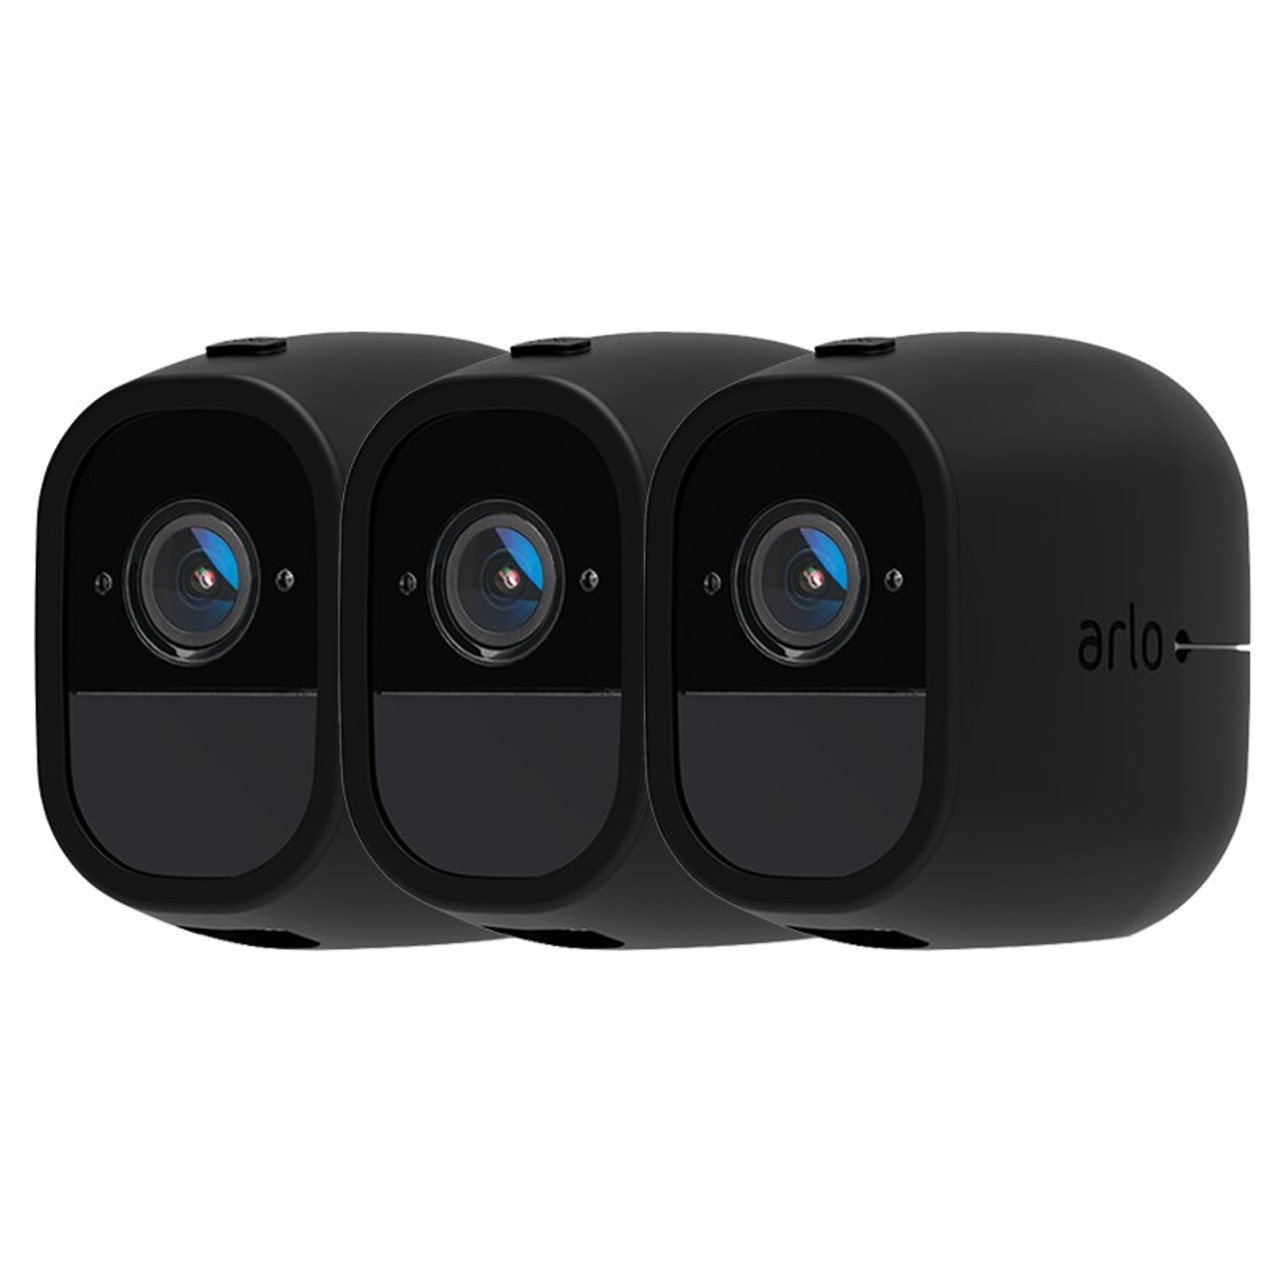 Image for Arlo Pro/Pro 2 Security Black Camera Skin - 3 Pack CX Computer Superstore